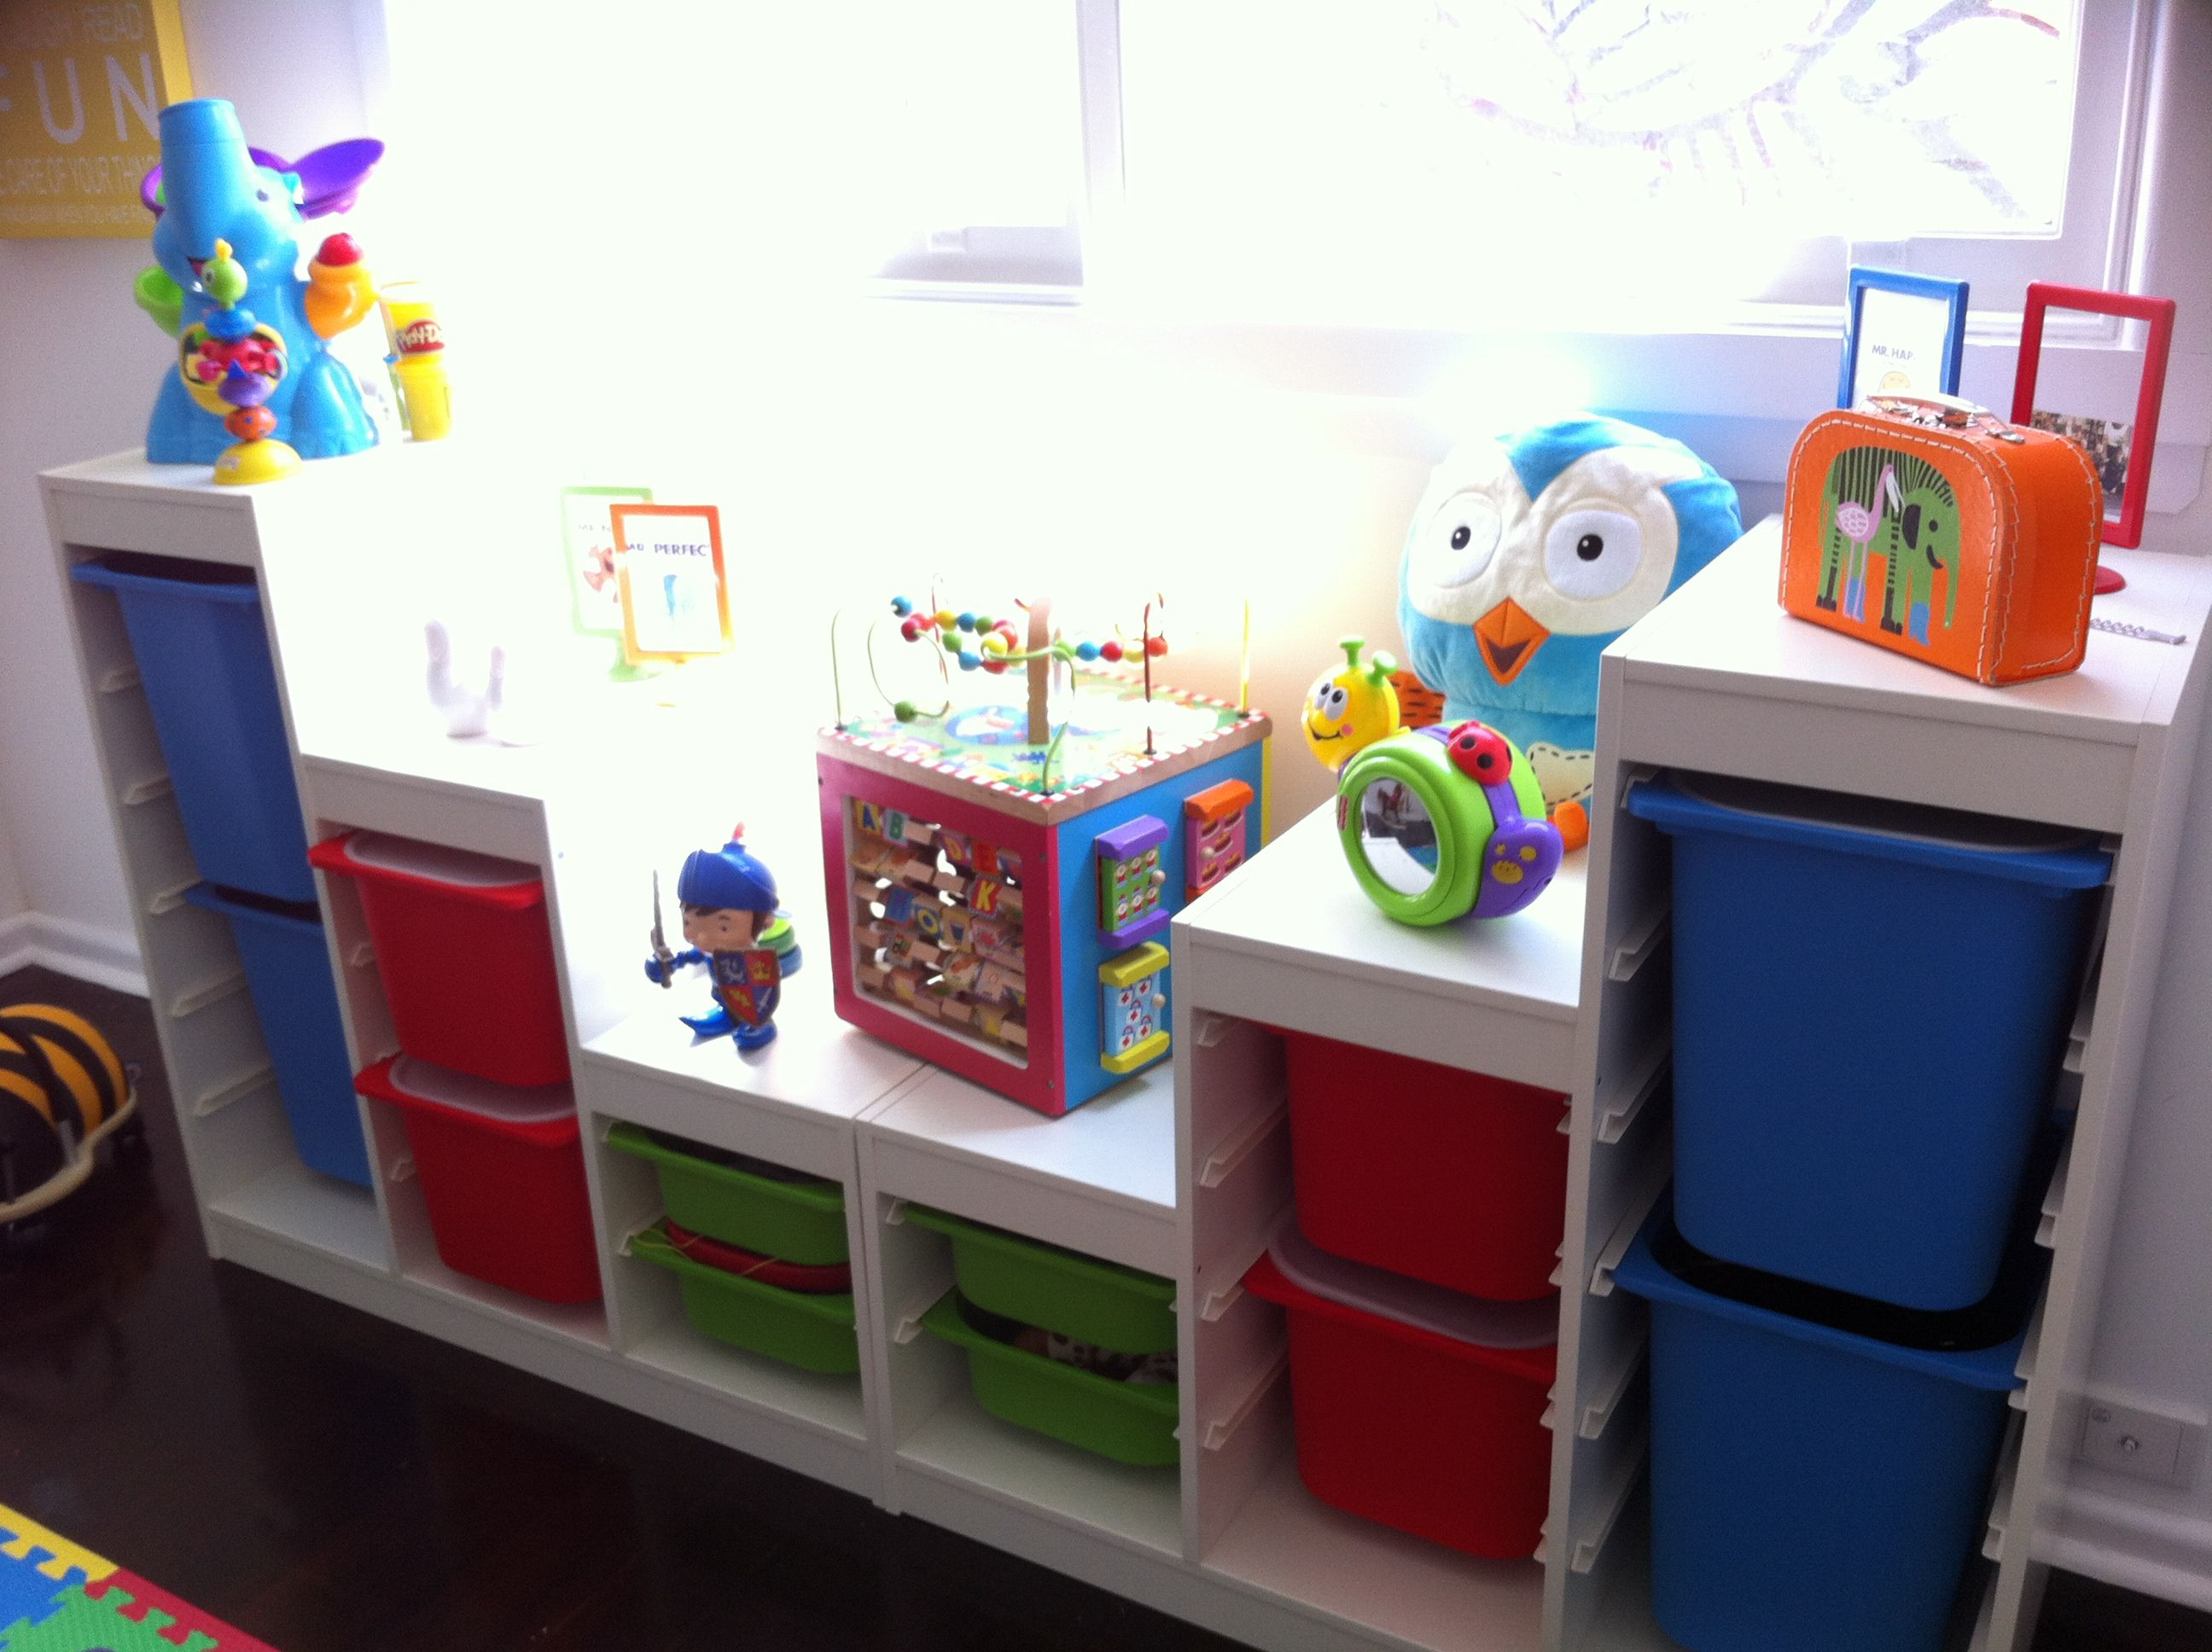 High Quality Unique 17 Ikea Playroom Ideas 2592x1936 Storage Solutions For Room Designs  Design Ideas